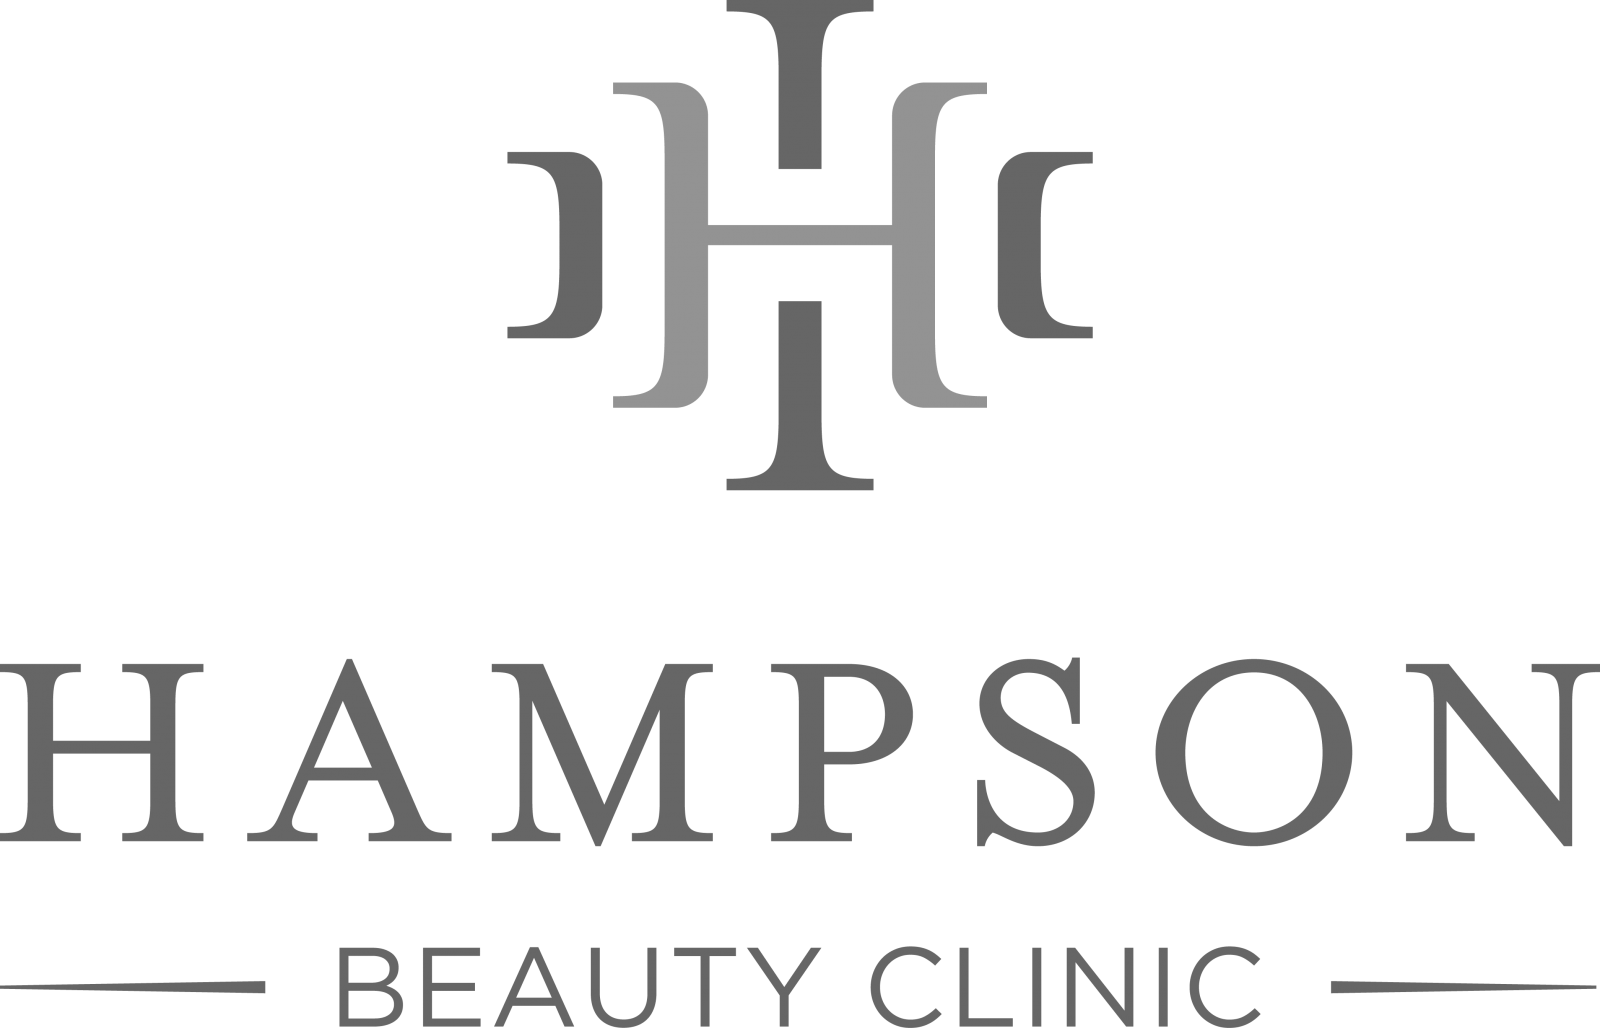 Hampson Nail and Beauty Salon